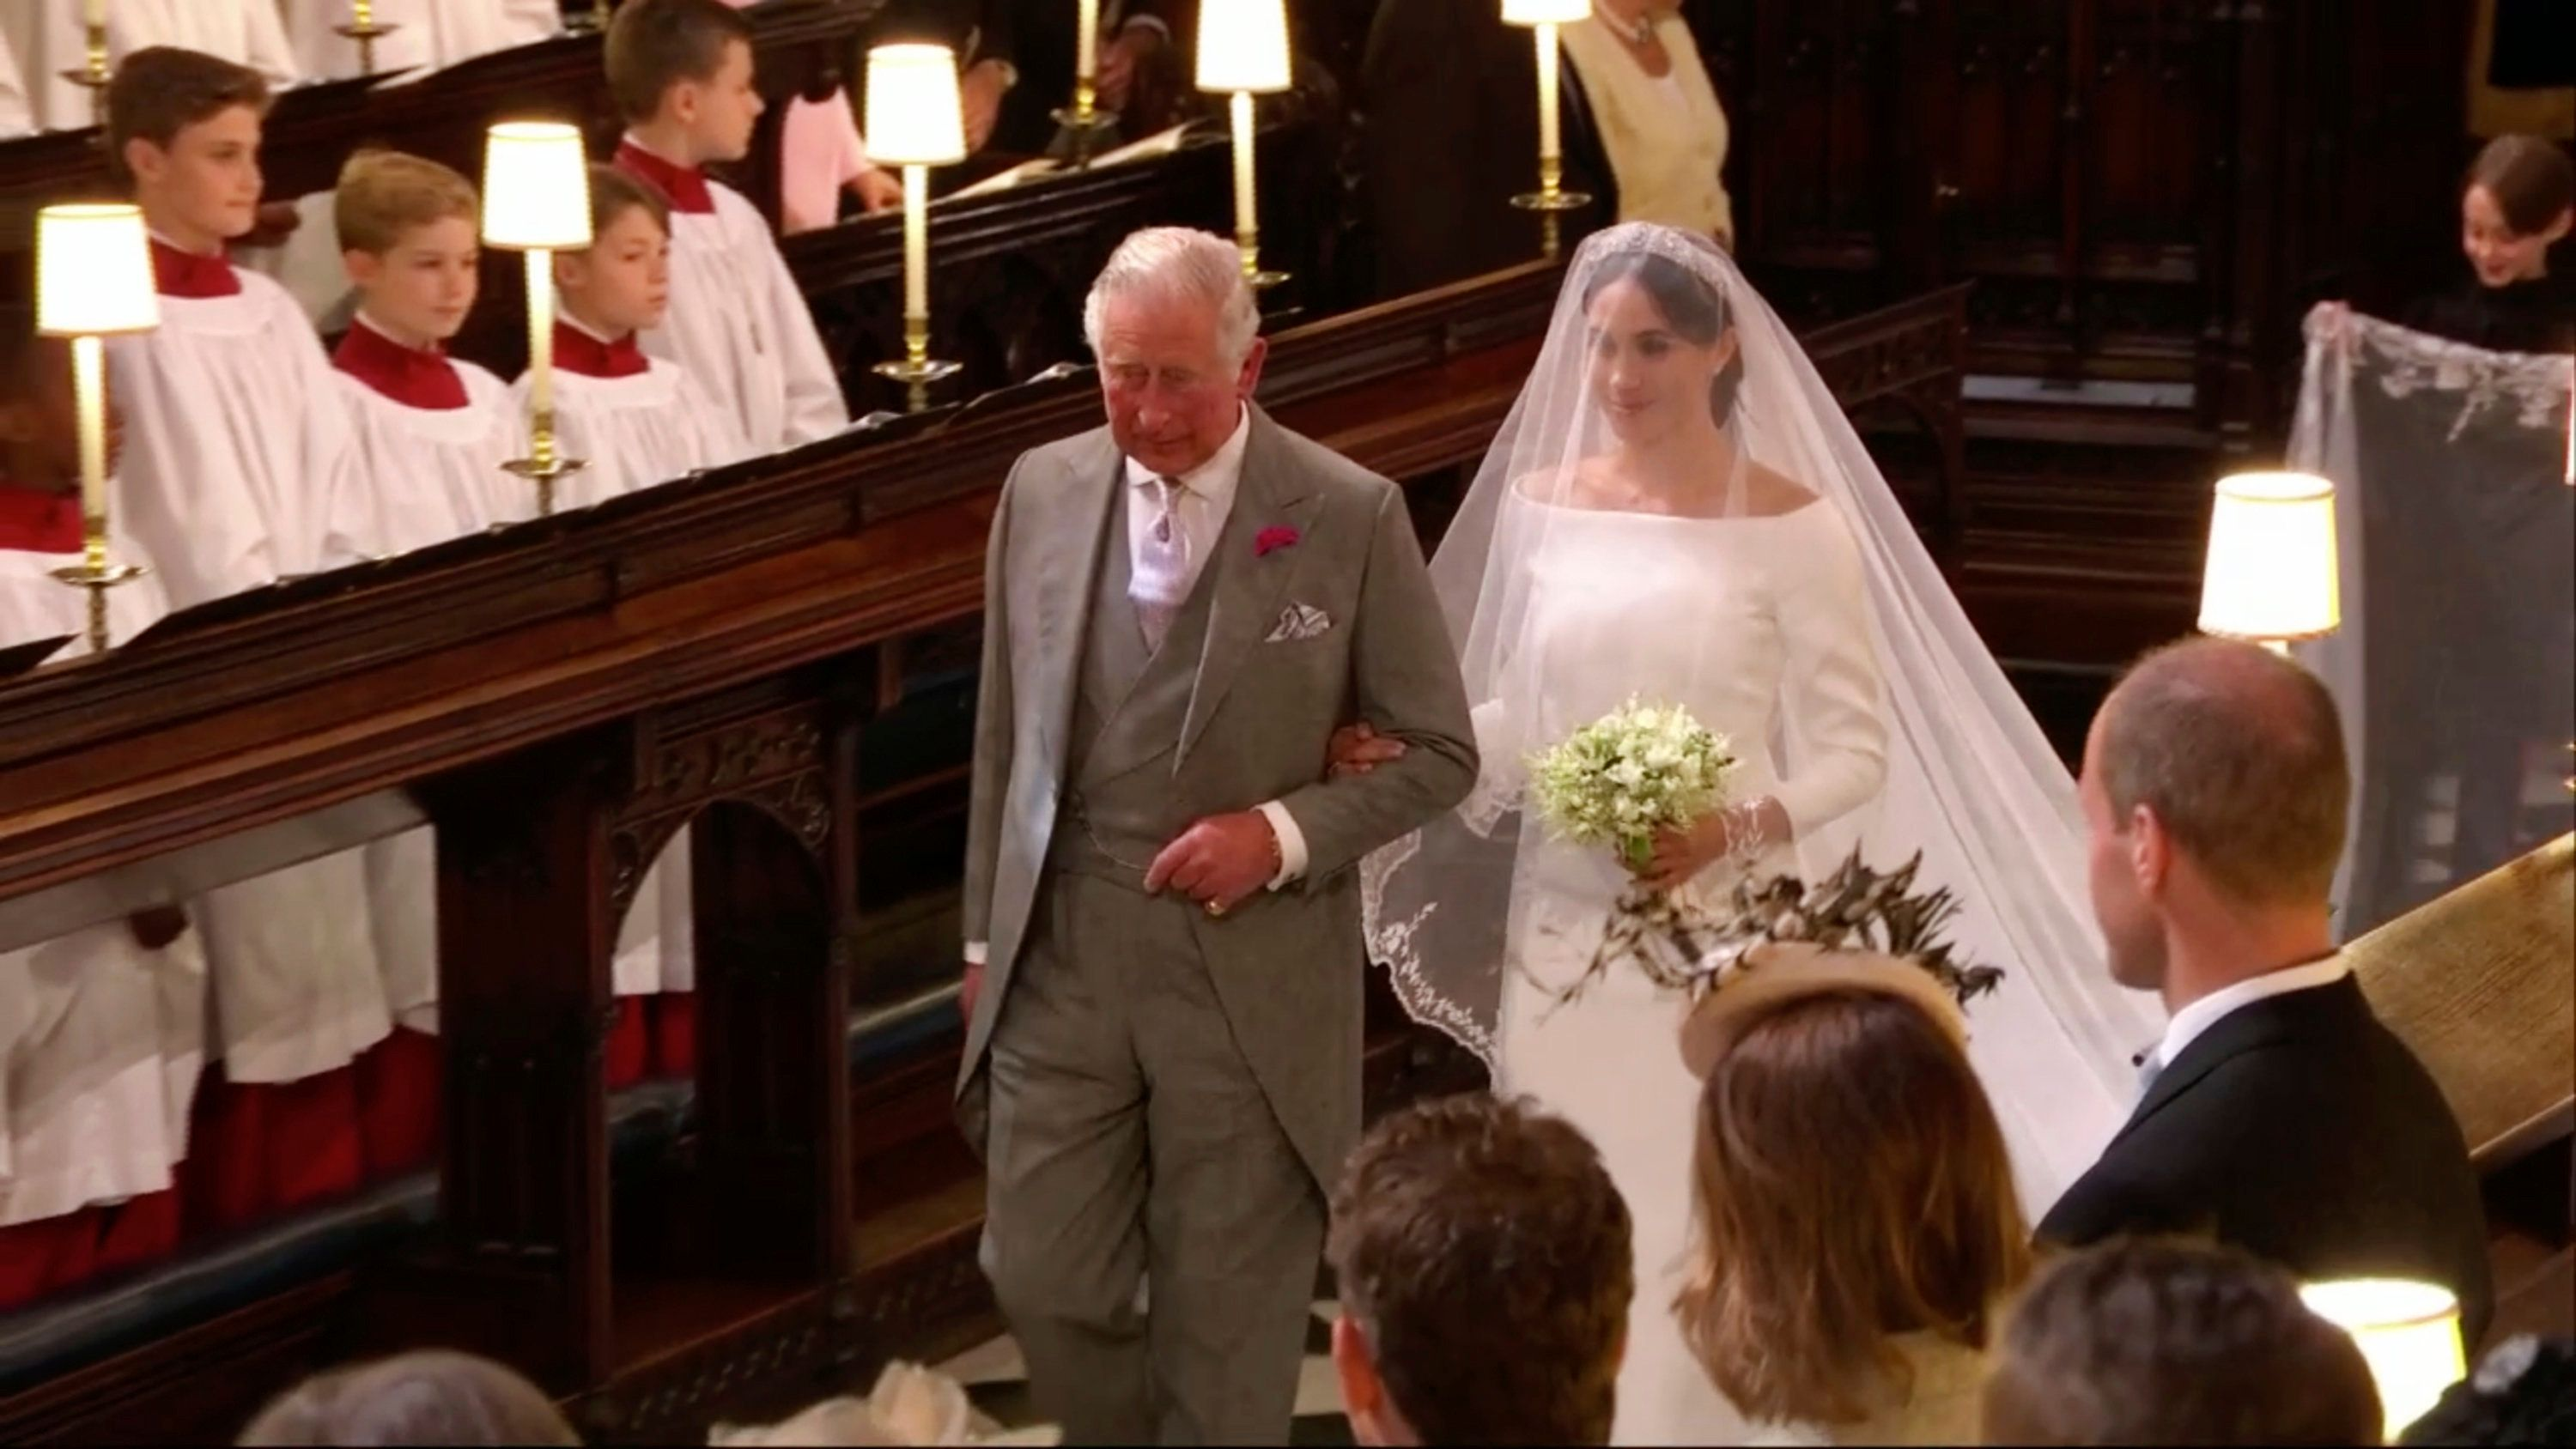 Meghan Markle walks down the aisle with Prince Charles for her wedding ceremony at St. George's Chapel in Windsor Castle in Windsor on May 19.